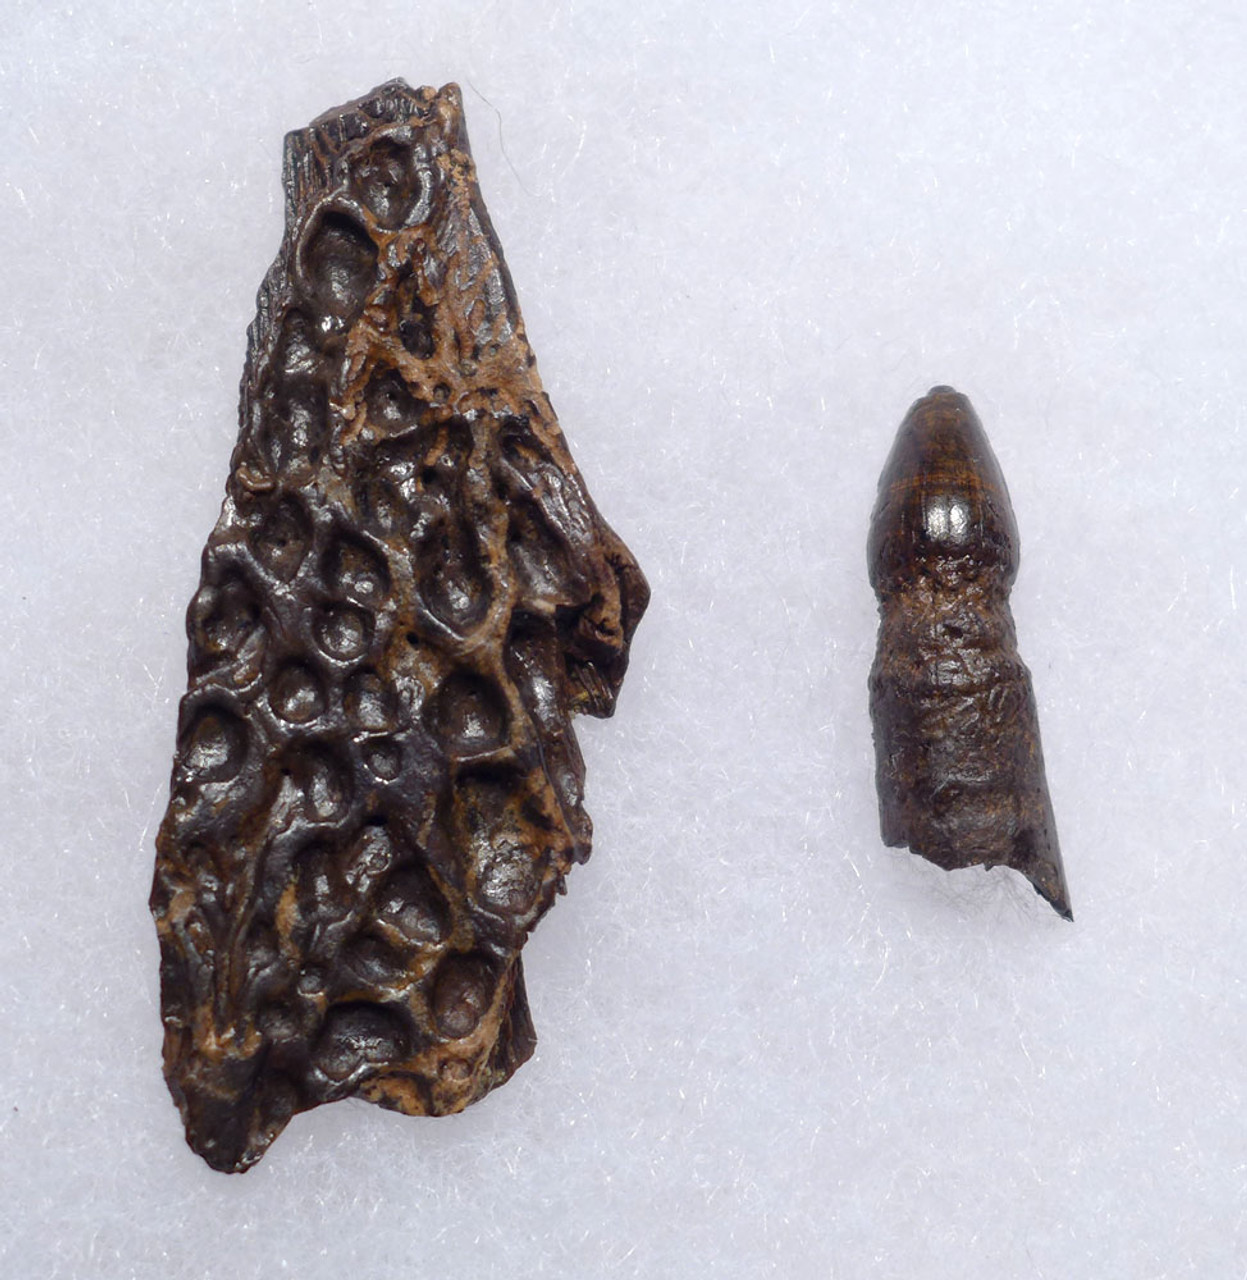 CRETACEOUS LEIDYOSUCHUS CROCODILE FOSSIL TOOTH WITH JAW FRAGMENT FROM HELL CREEK  *CROC084